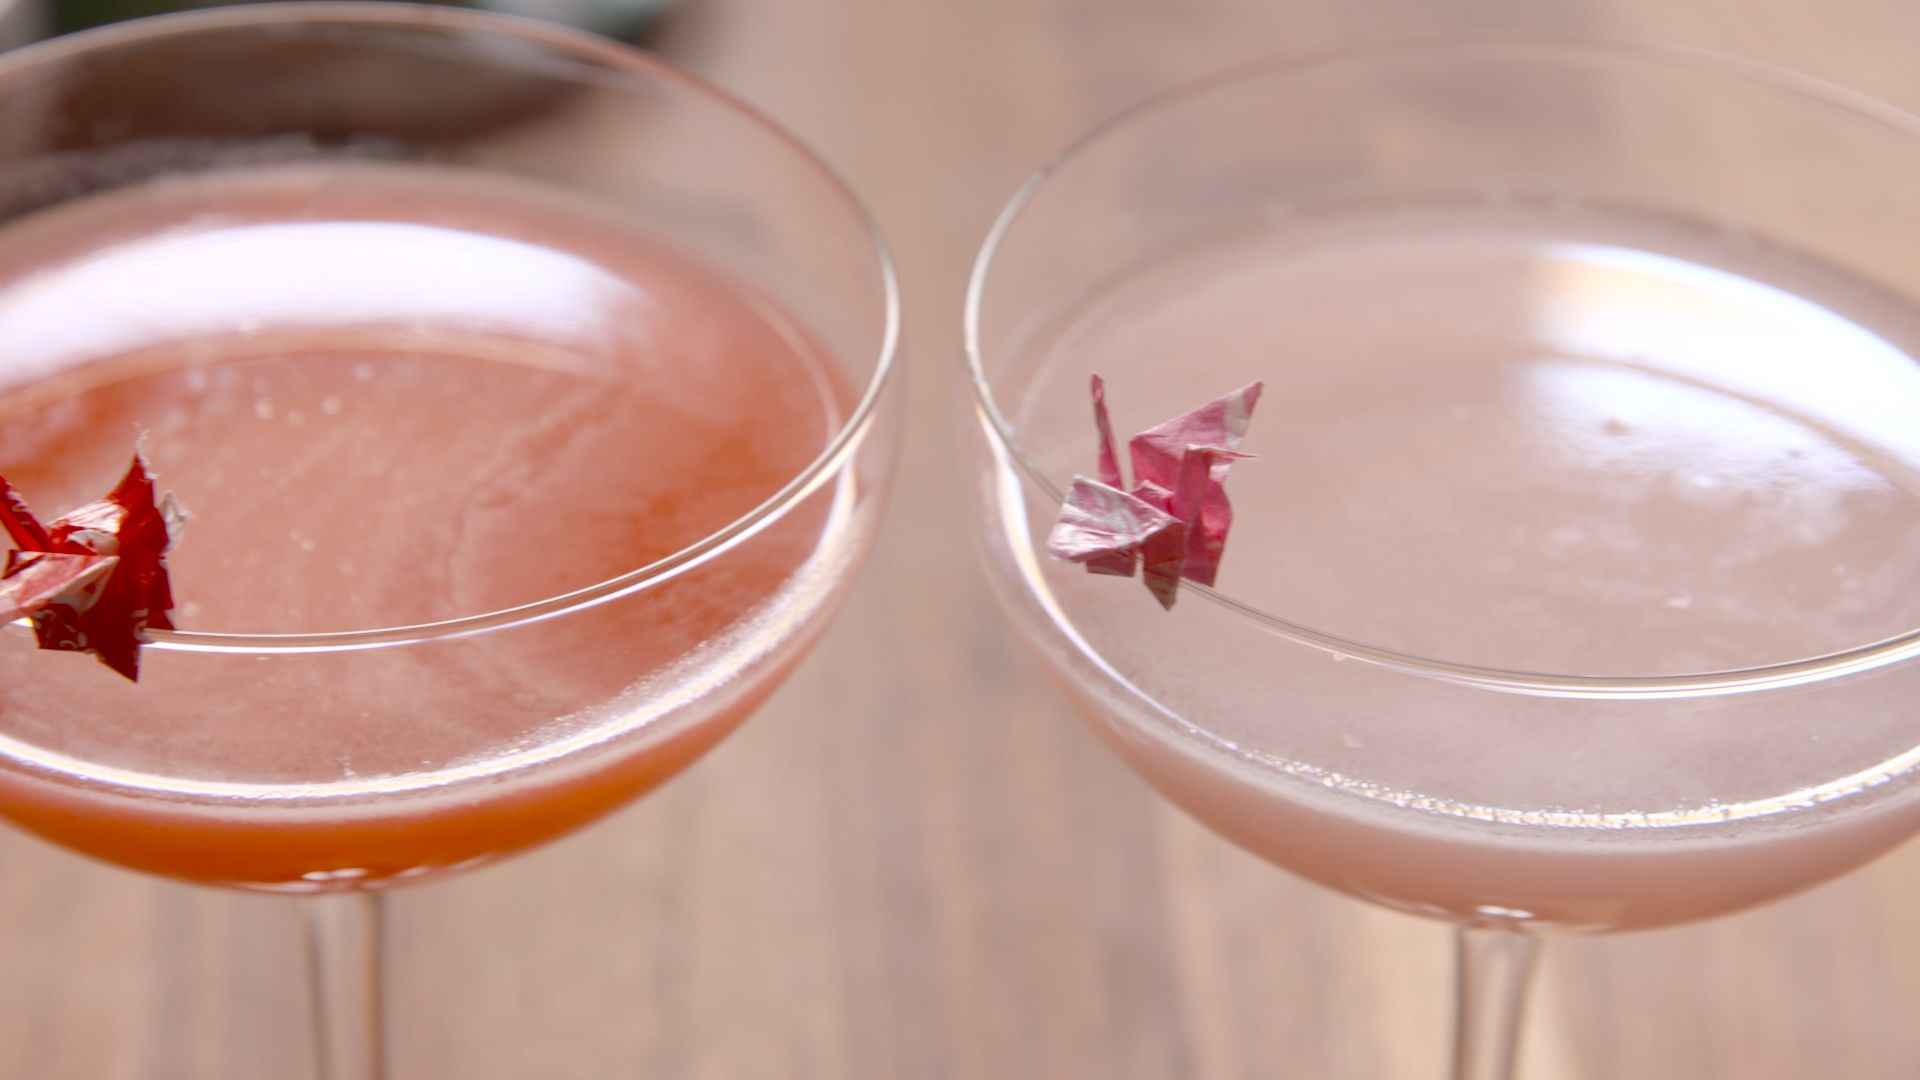 How to Make Pink Starburst Cosmos - Starburst-Infused Vodka - Delish com